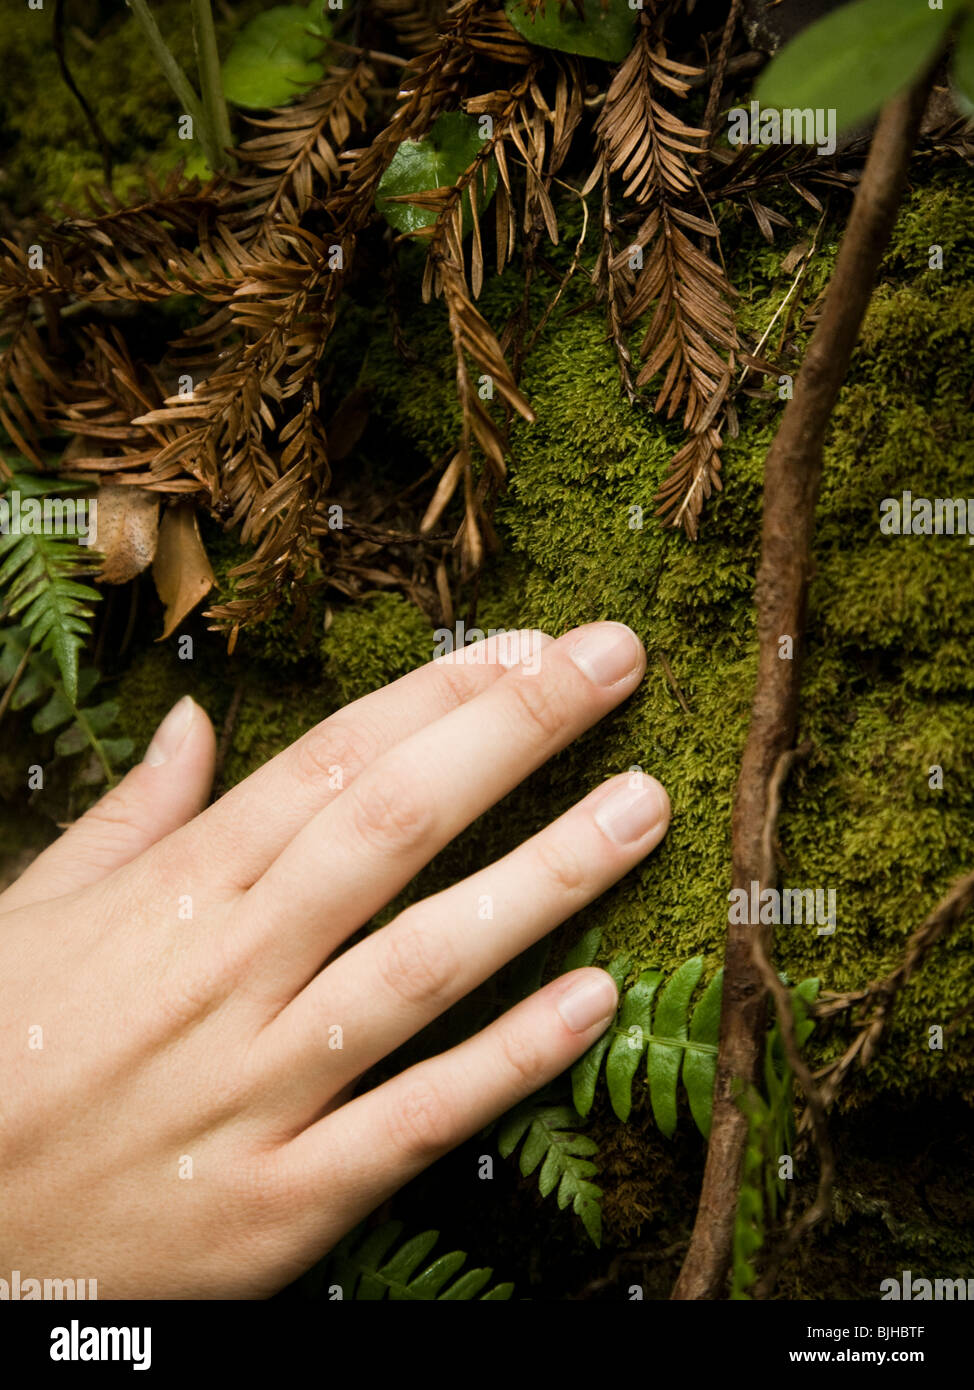 hand touching a moss covered tree trunk - Stock Image